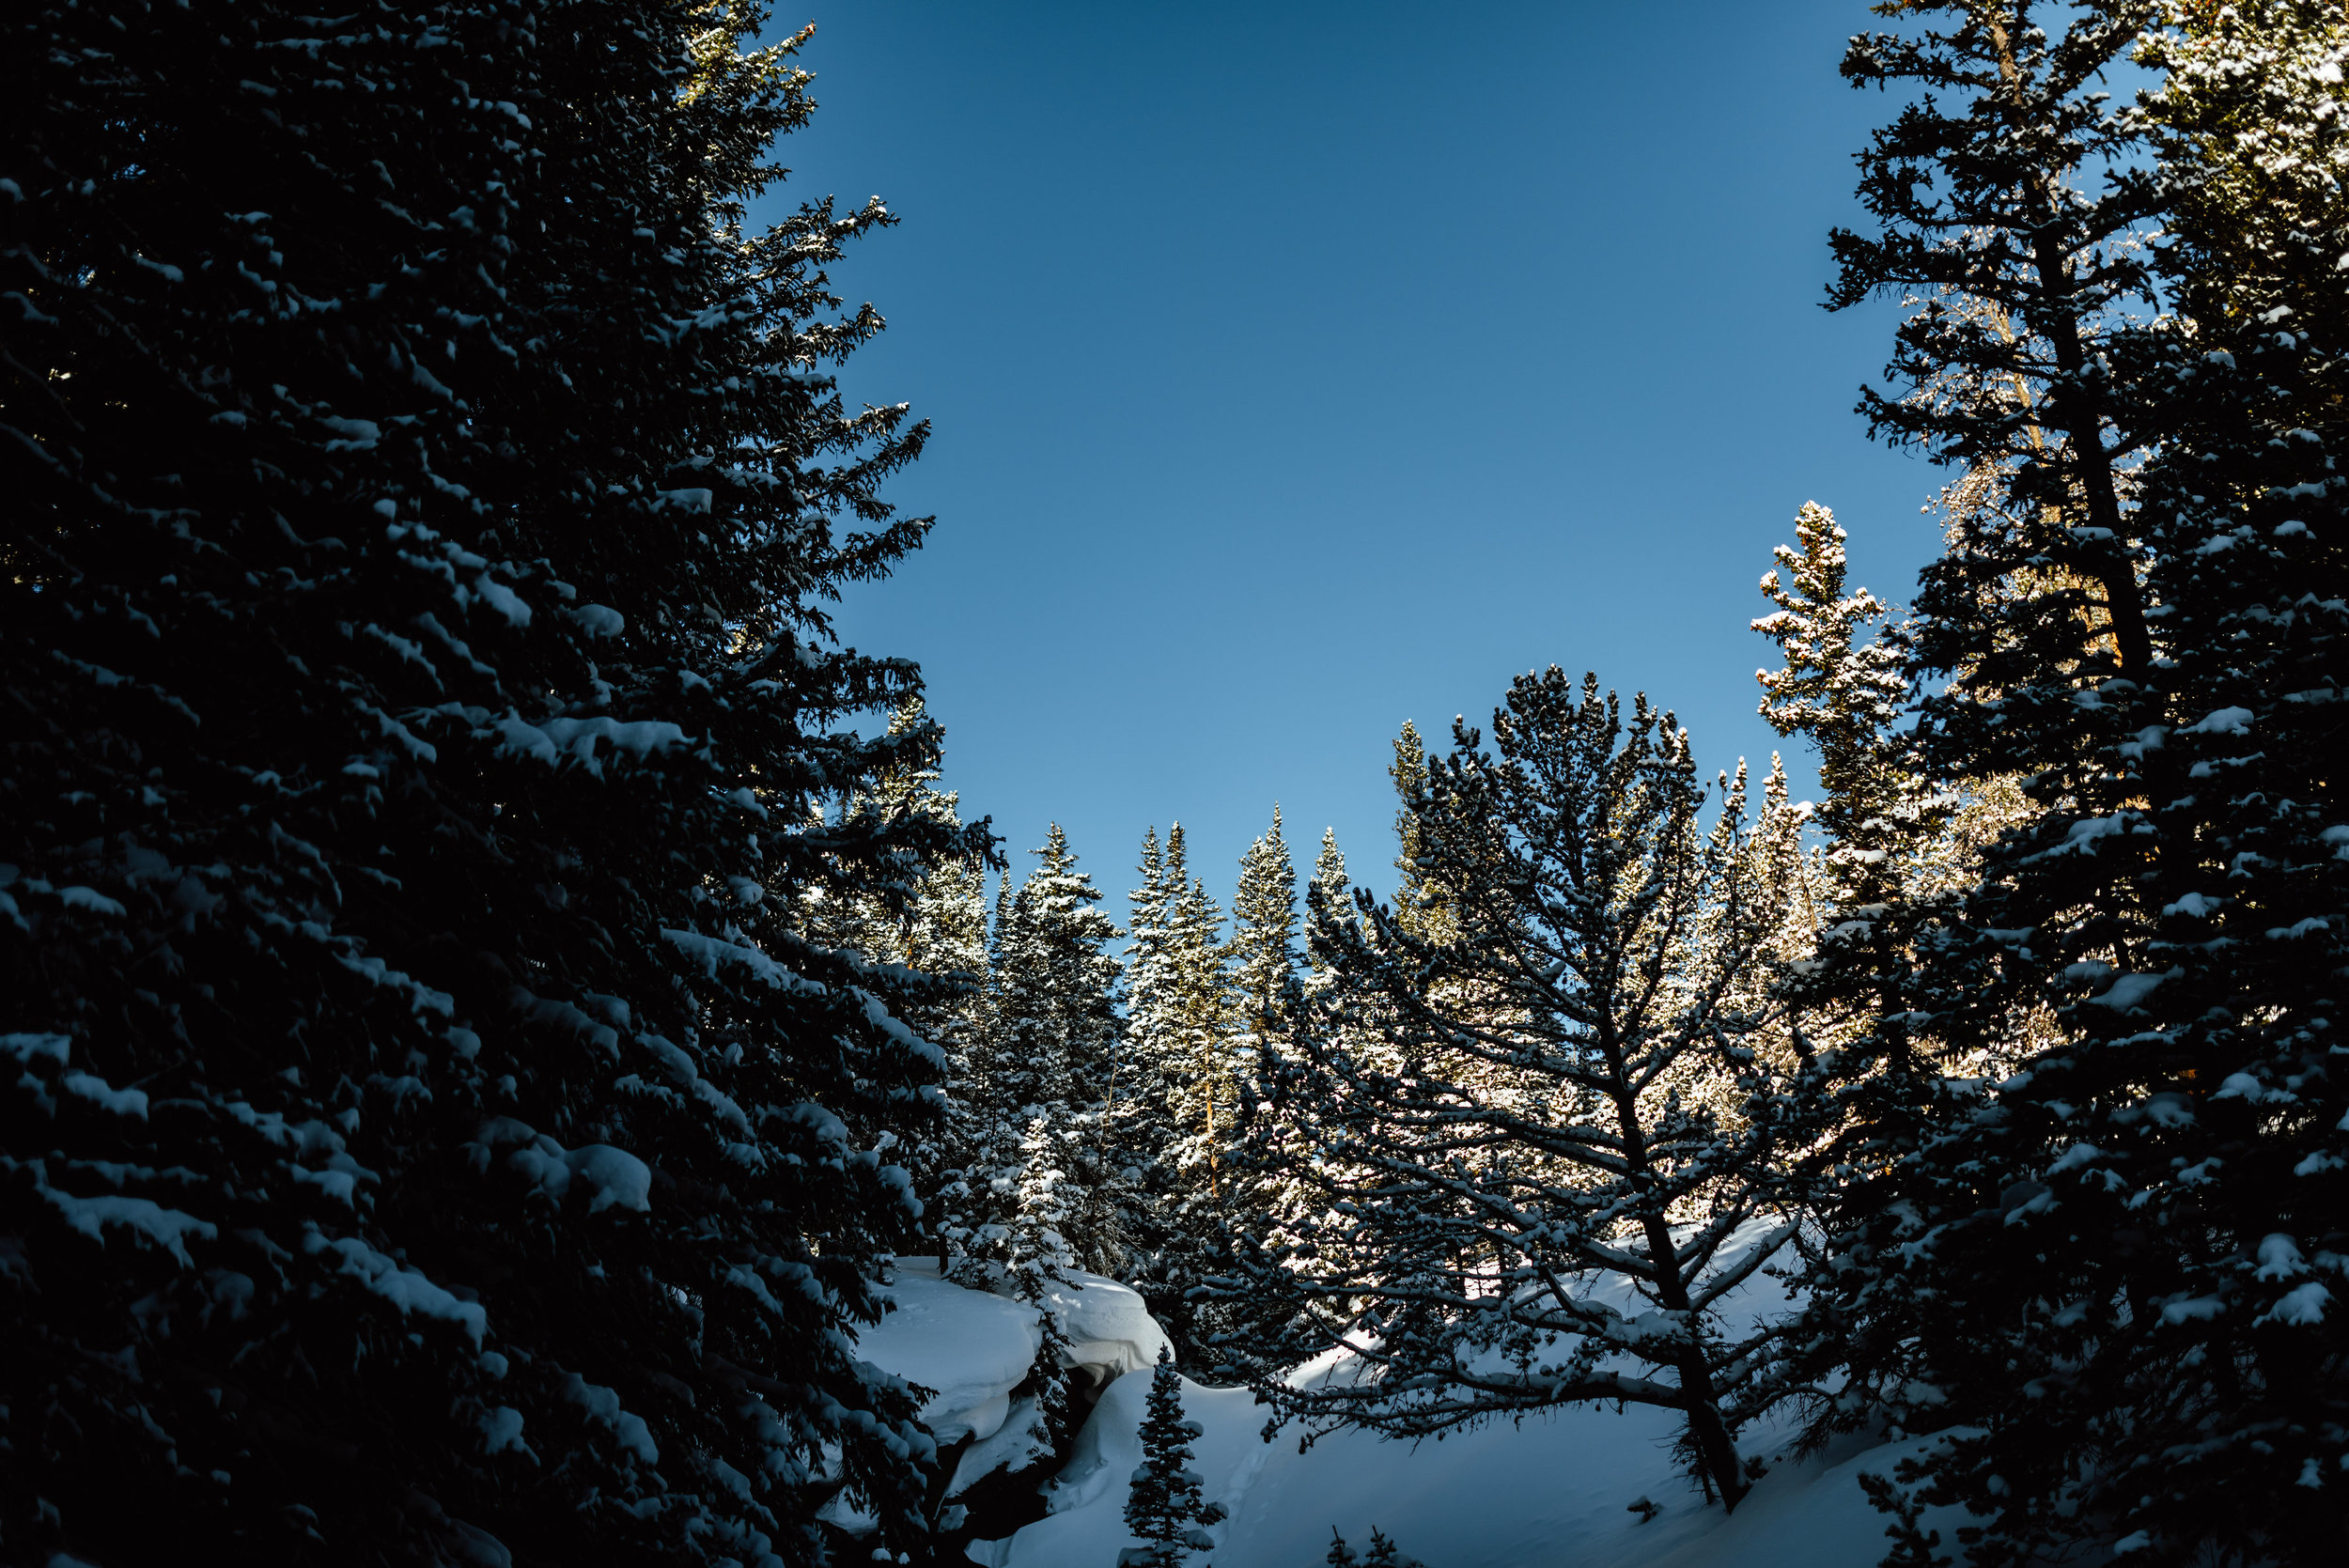 These trees around Lost Lake are so beautiful when they have snow covering them! I love winter mountain scenery, especially for an intimate snowshoeing engagement session!| Lost Lake engagement photos by adventurous Colorado wedding photographer, Maddie Mae.